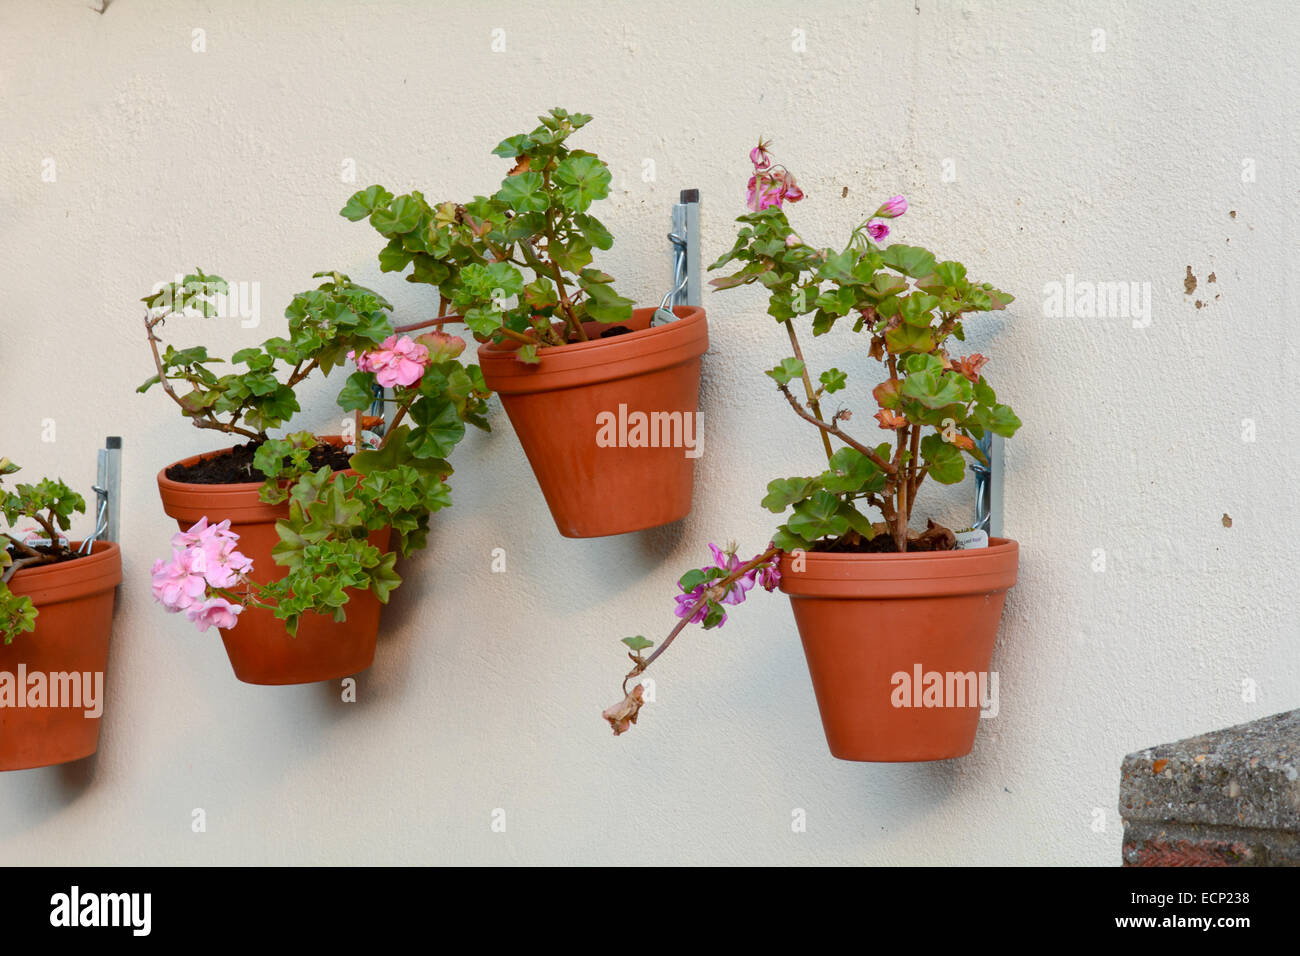 Flower pots hanging on garden wall stock photo royalty for Fence hanging flower pots